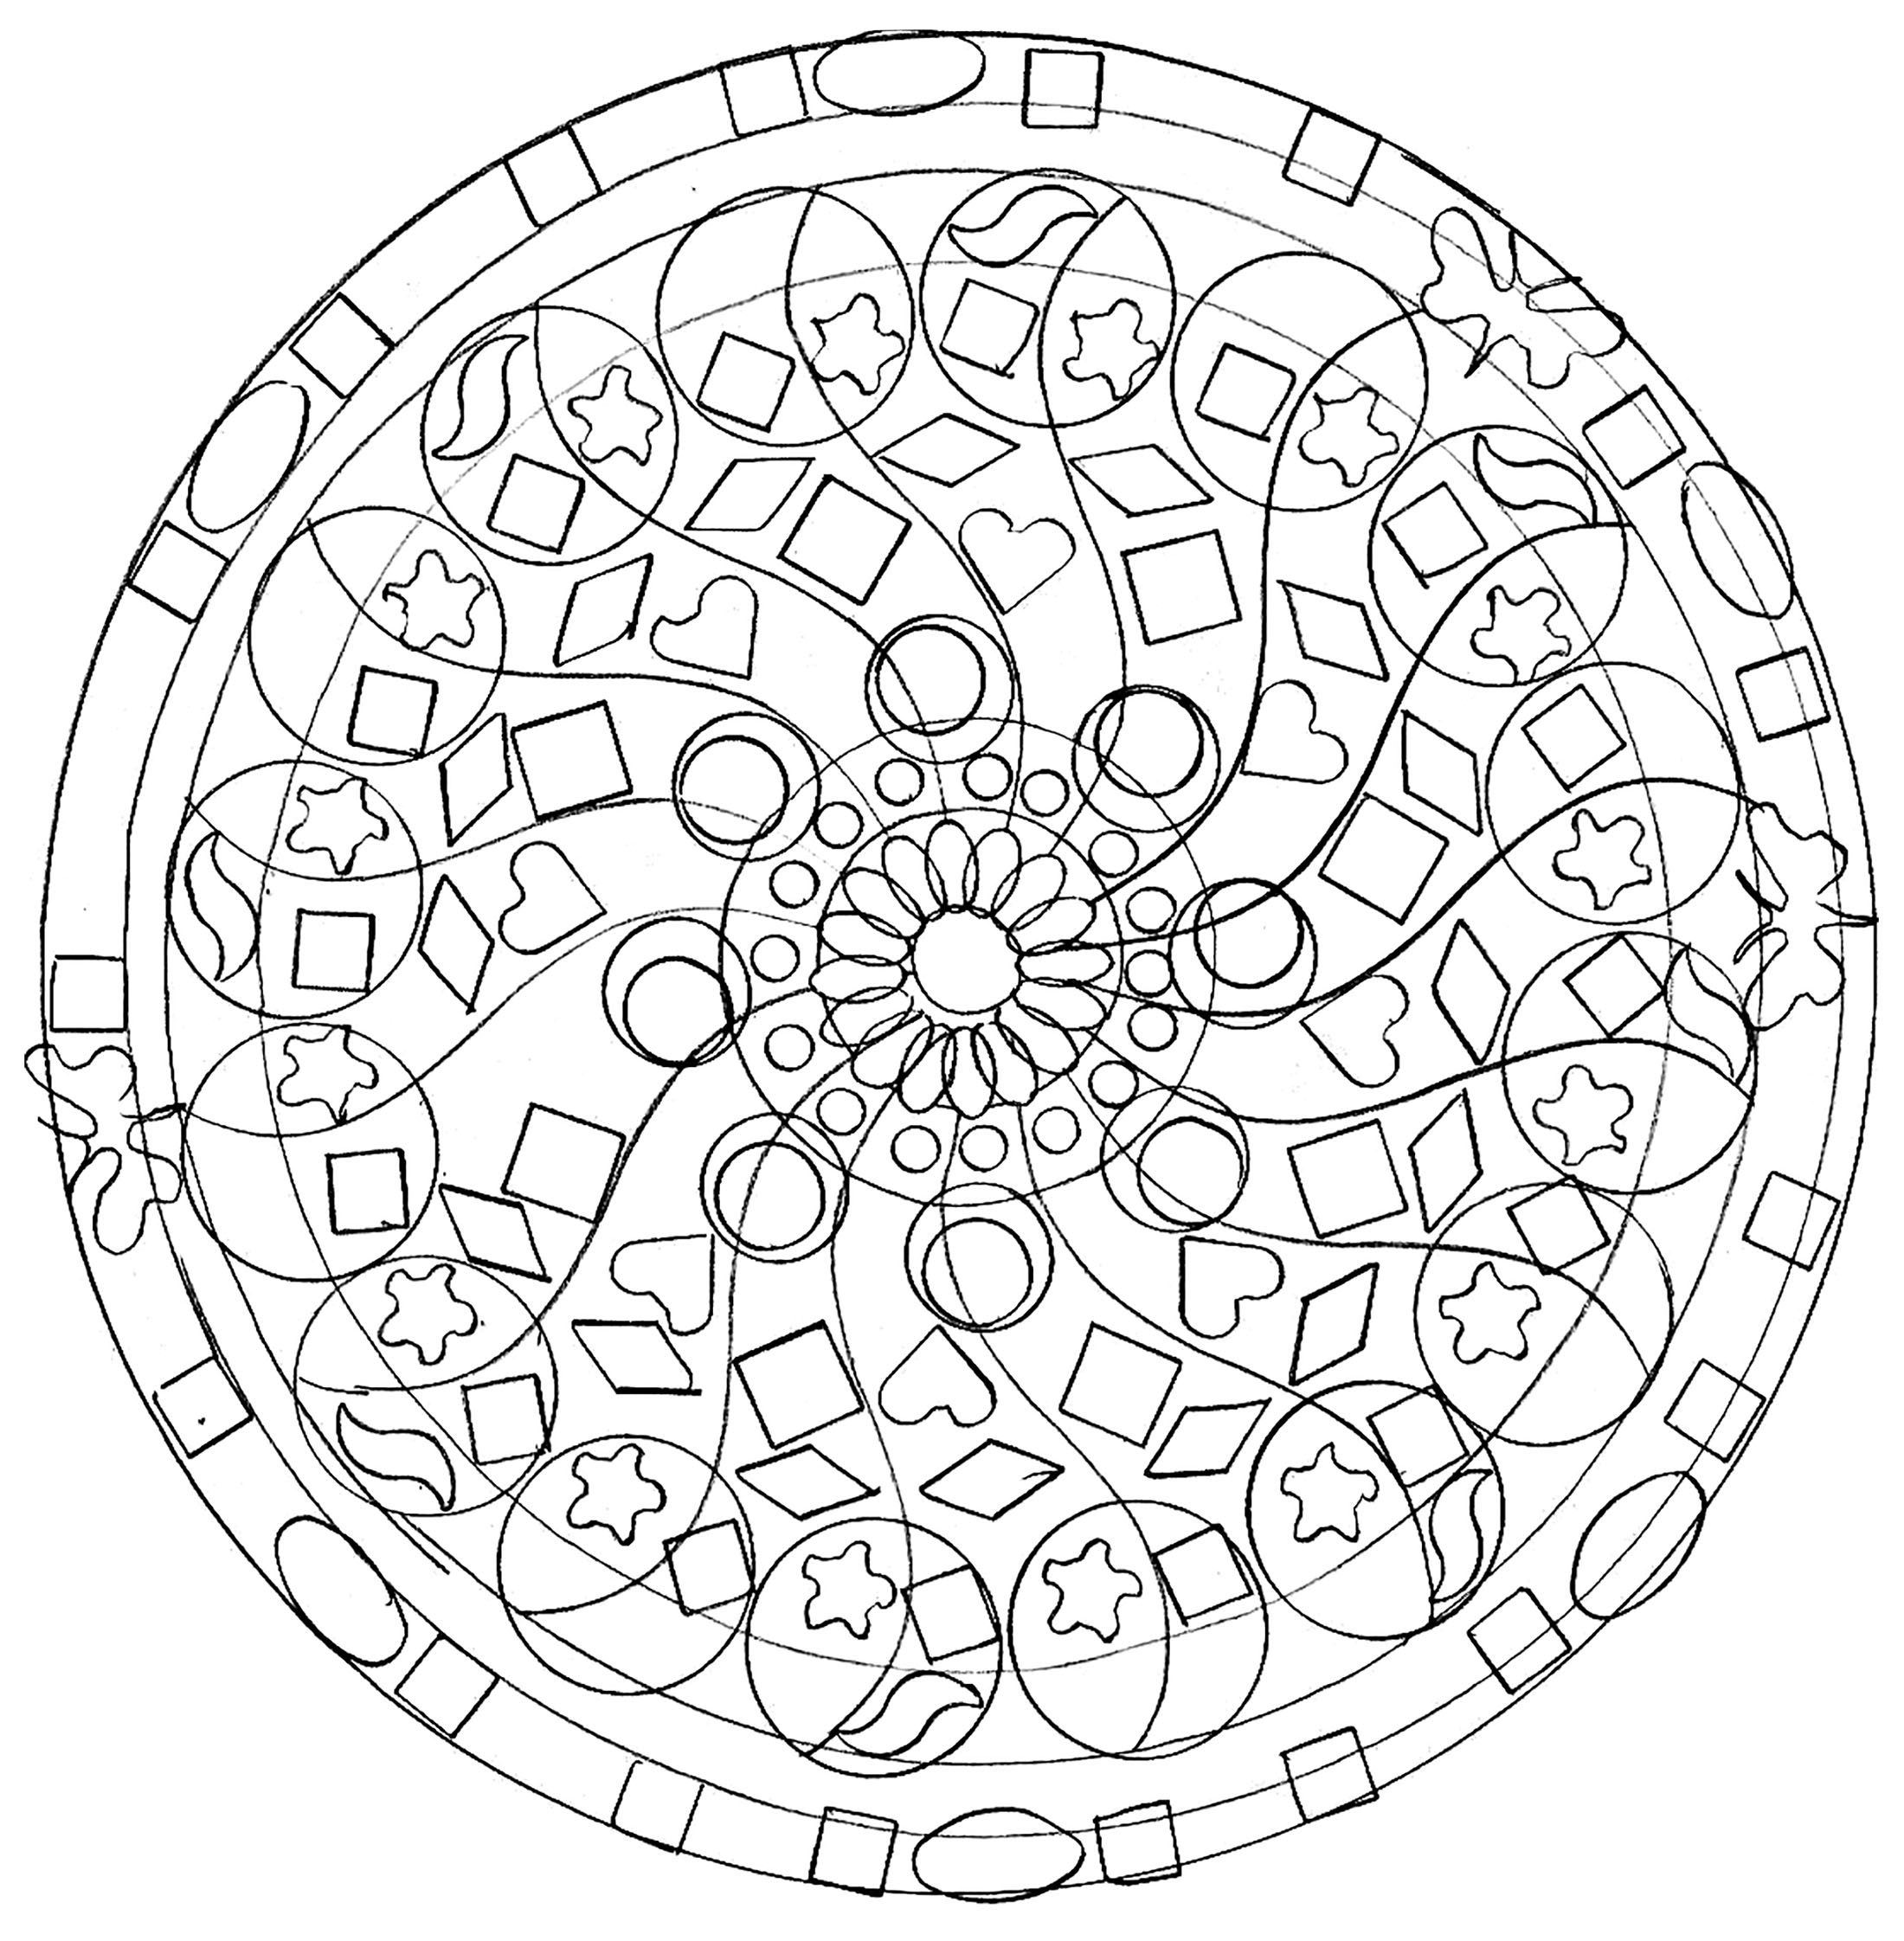 A mandala coloring page for the children, very easy. Coloring is proven therapeutic for some kids. They vent their feelings, frustrations and other emotions though coloring.